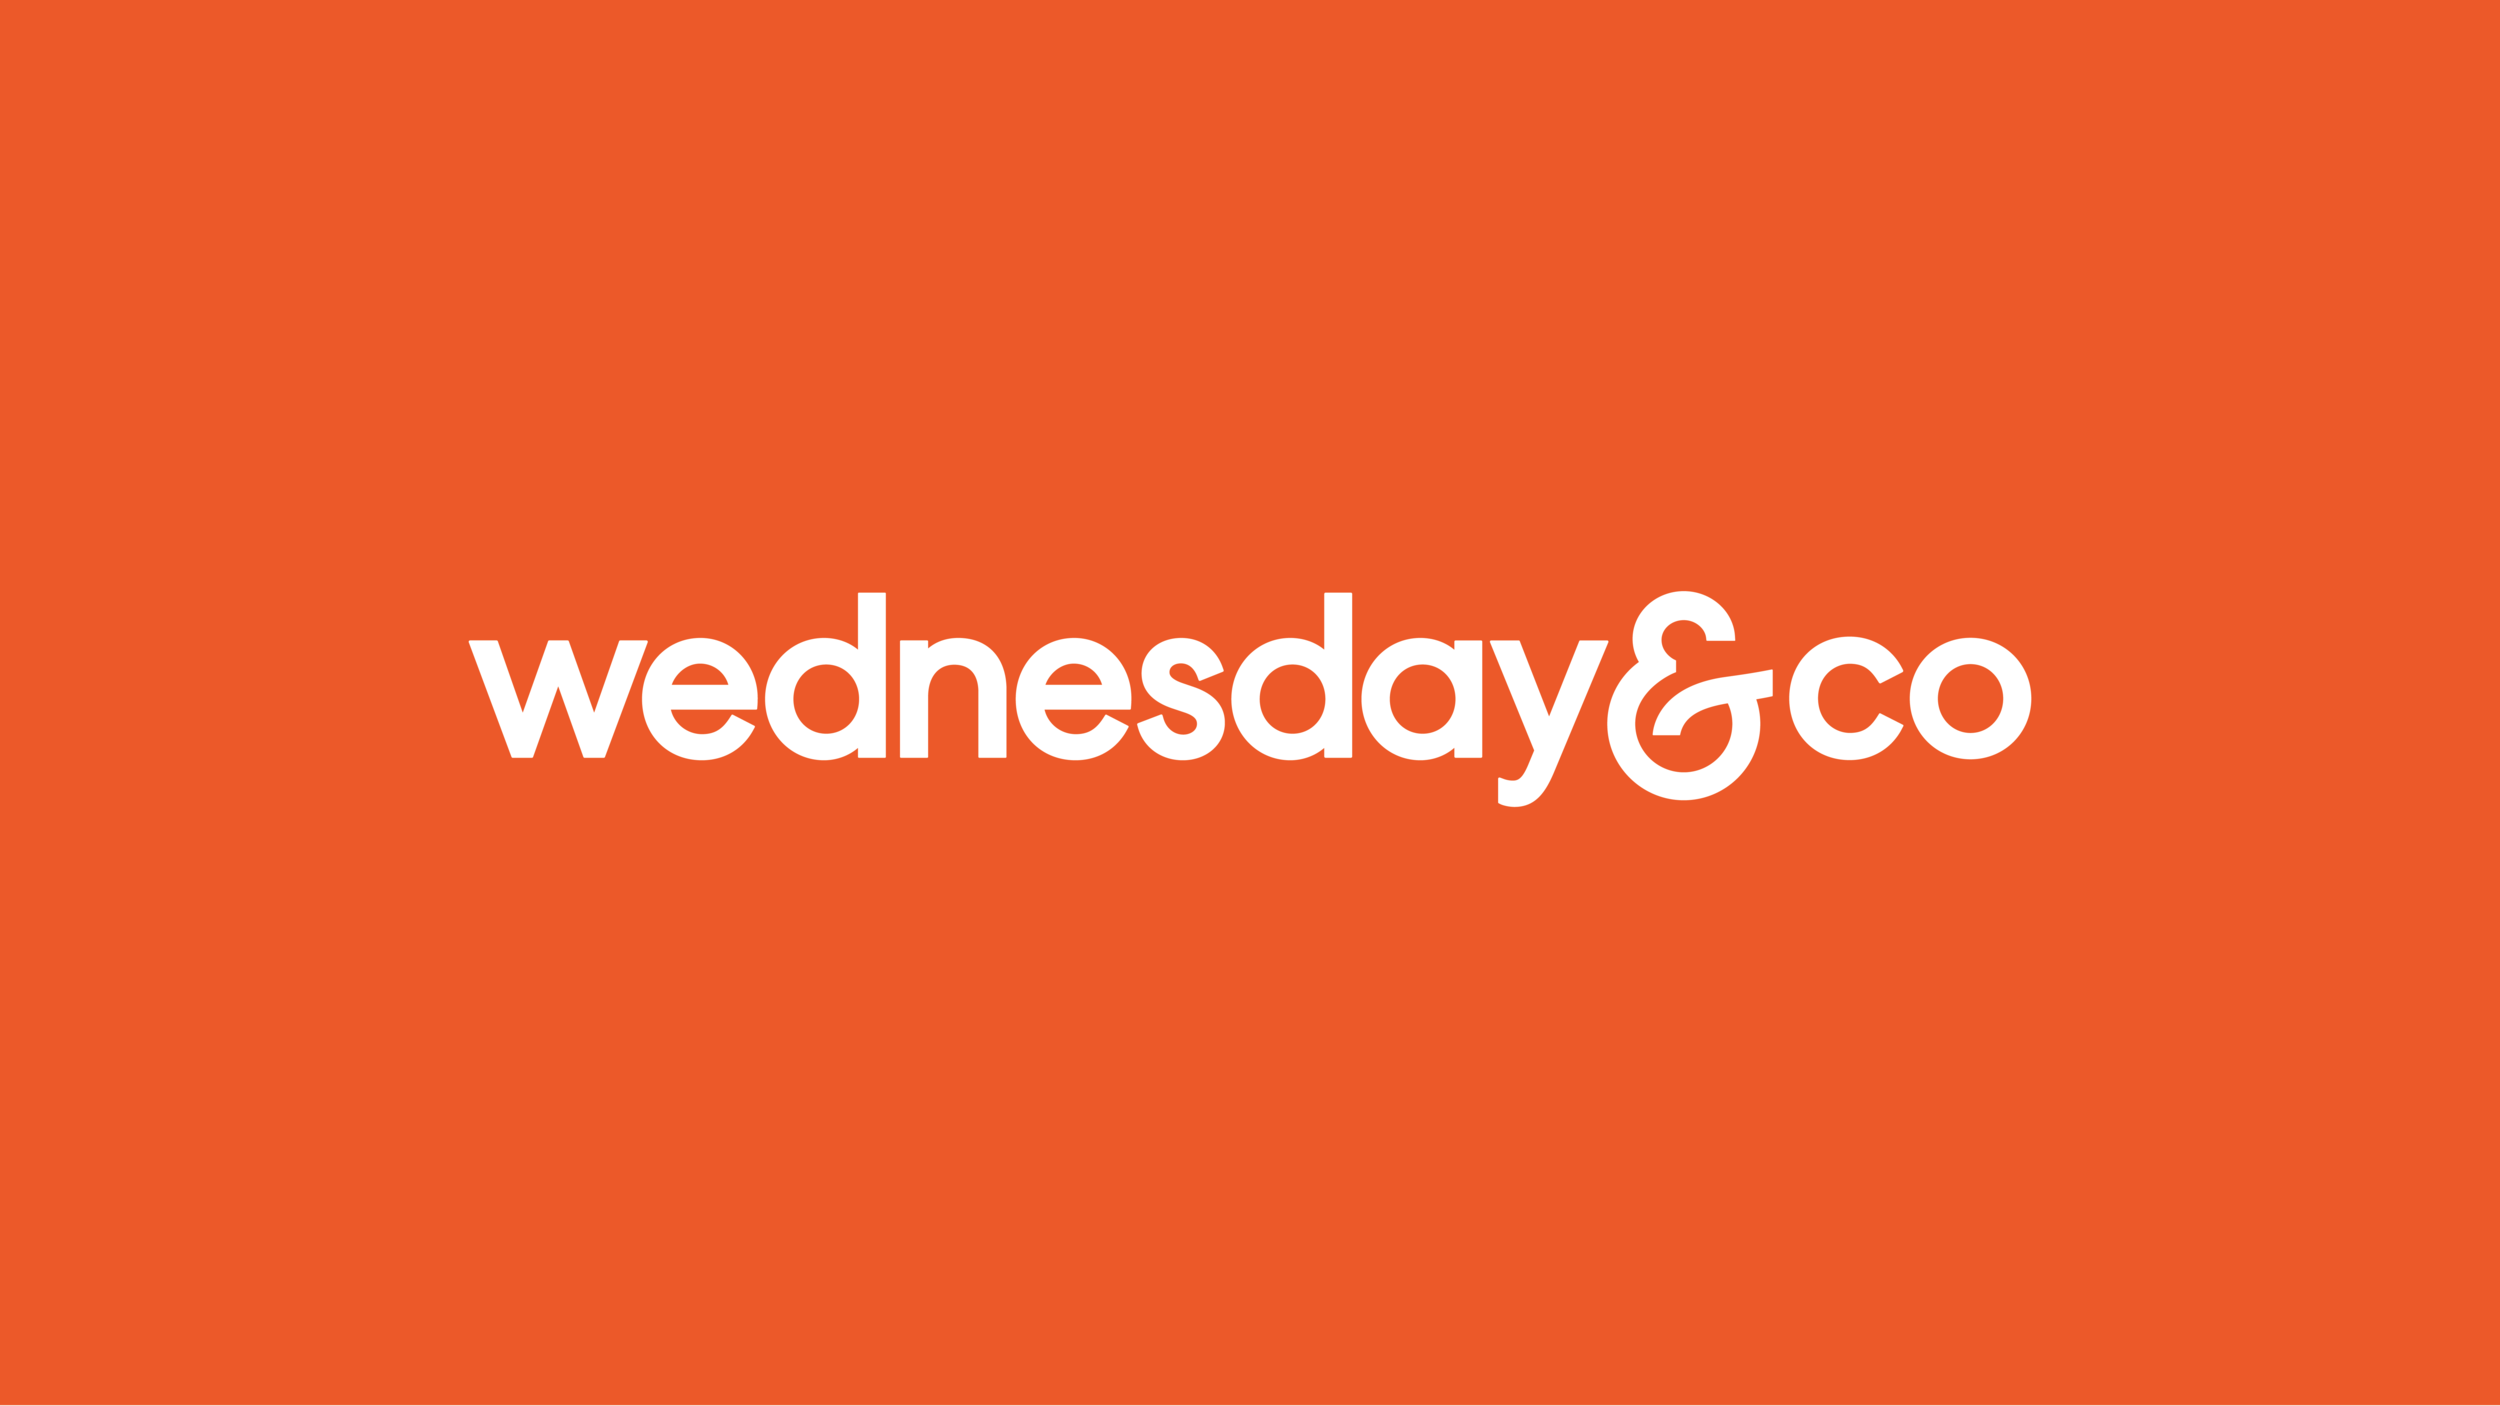 WEDNESDAYCO-LOGO-1920PX-01.png